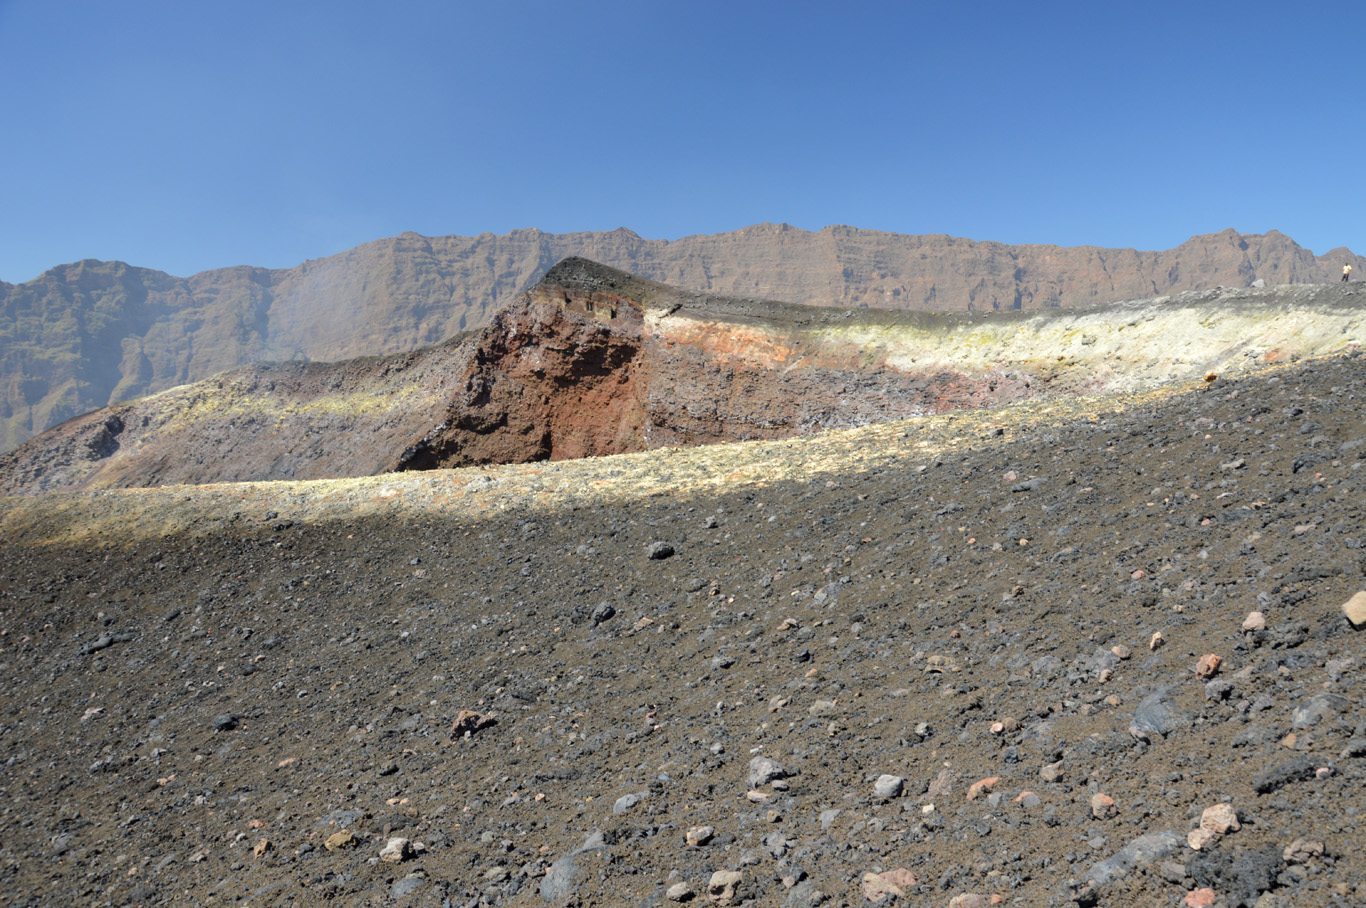 The lower peak - it was here where the 2014 eruption took place